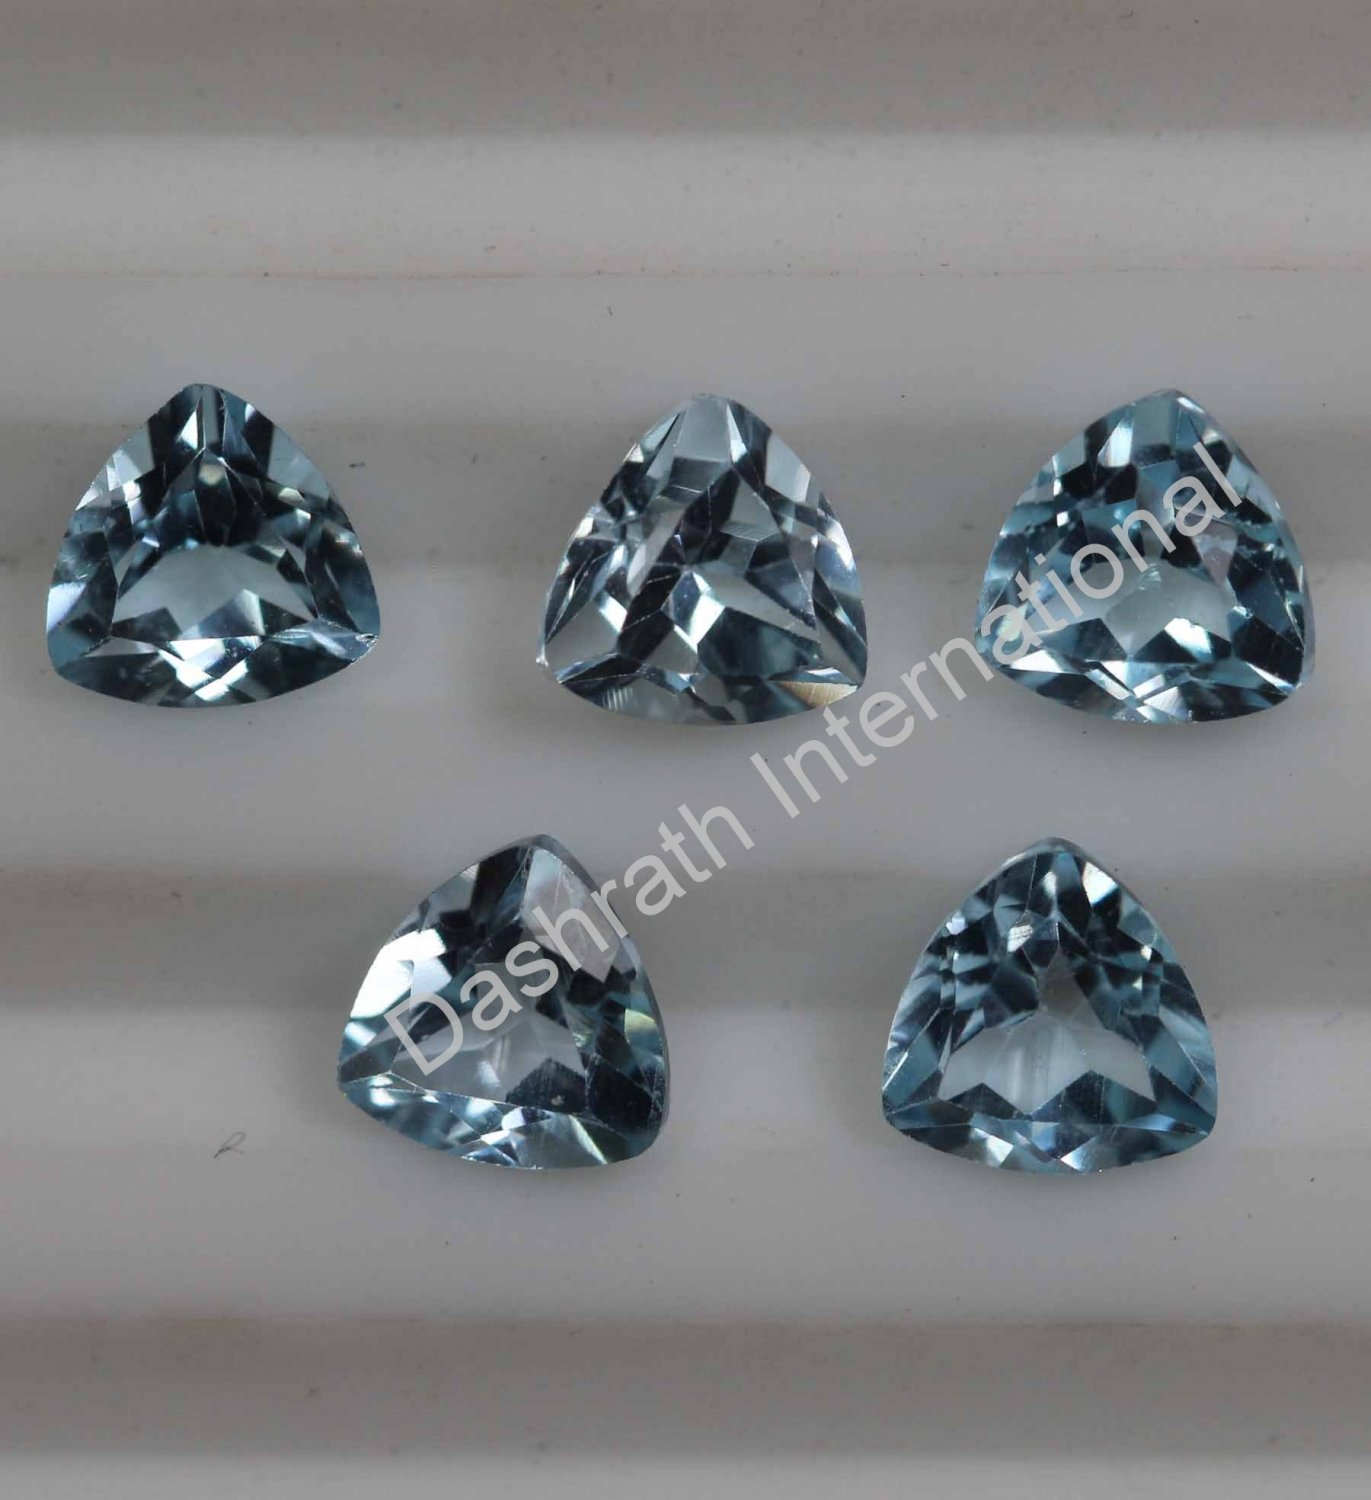 3mm Natural Sky Blue Topaz Faceted Cut Trillion 100 Pieces Lot Top Quality Loose Gemstone